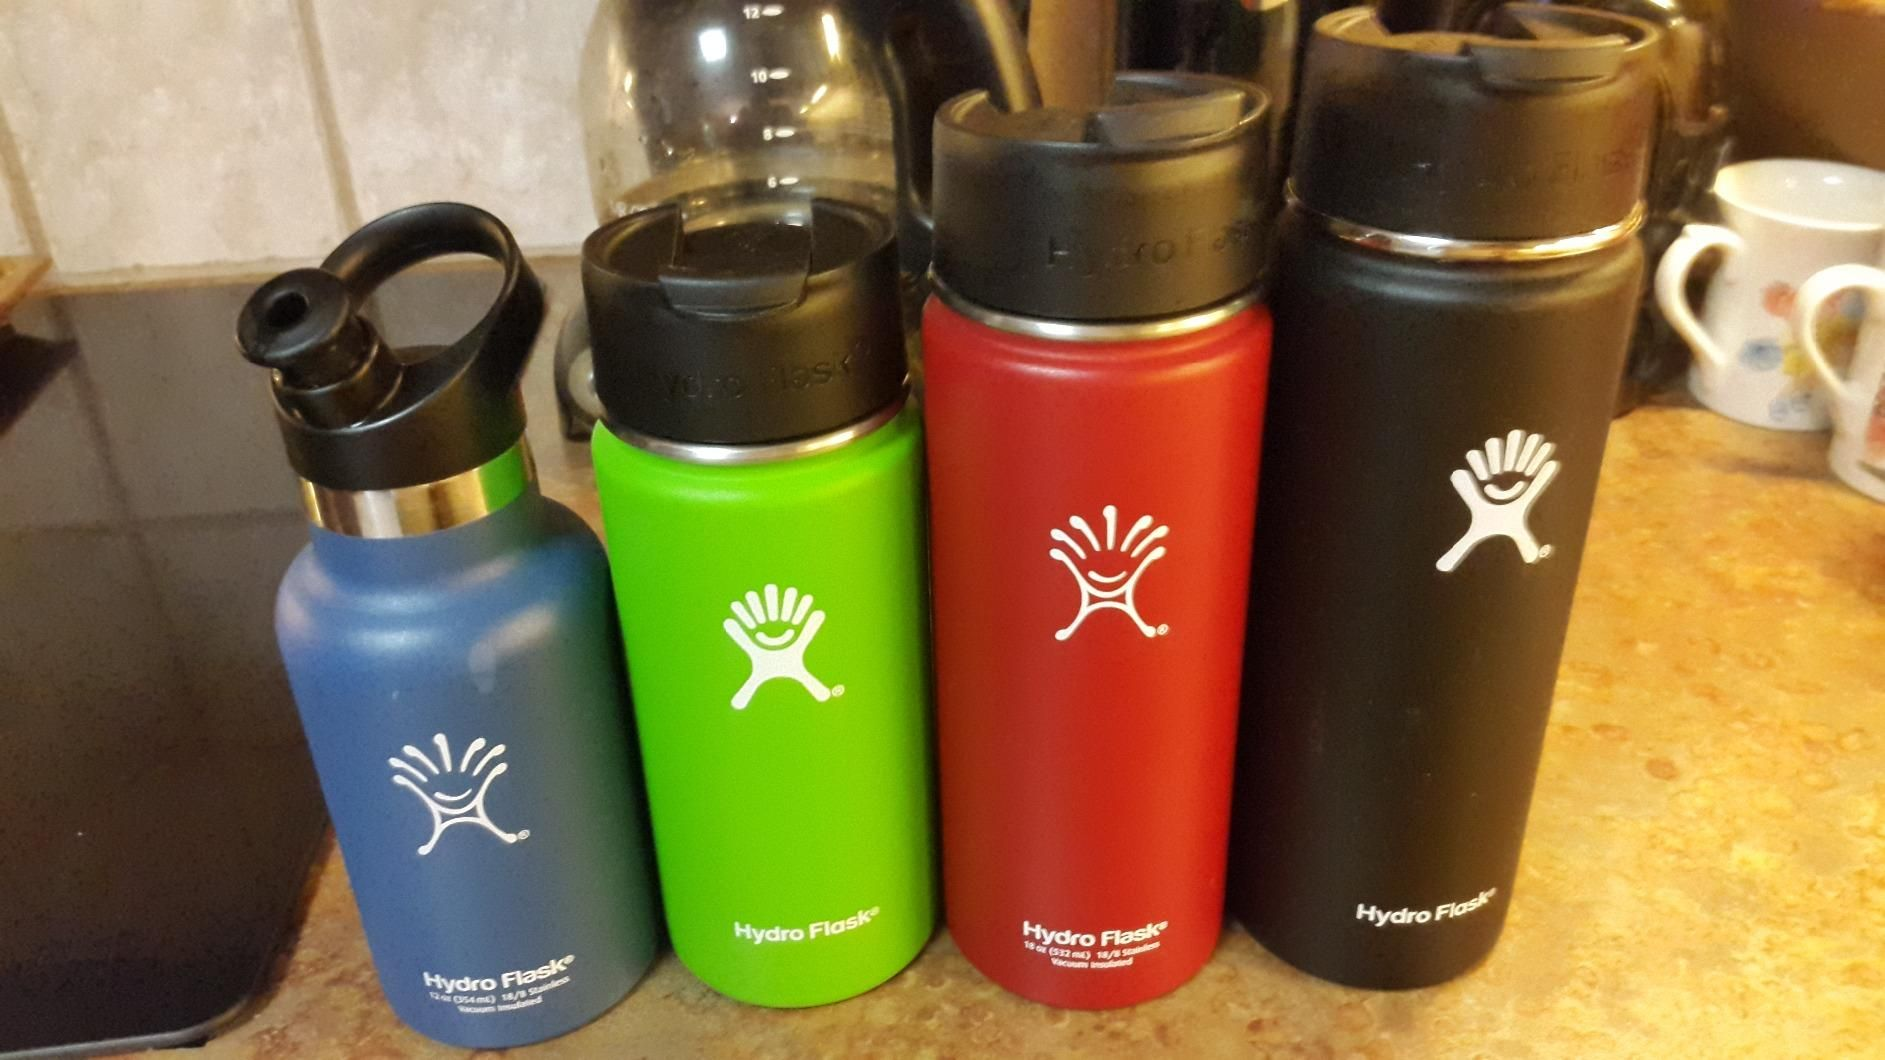 Hydro Flask Vacuum Insulated Stainless Steel